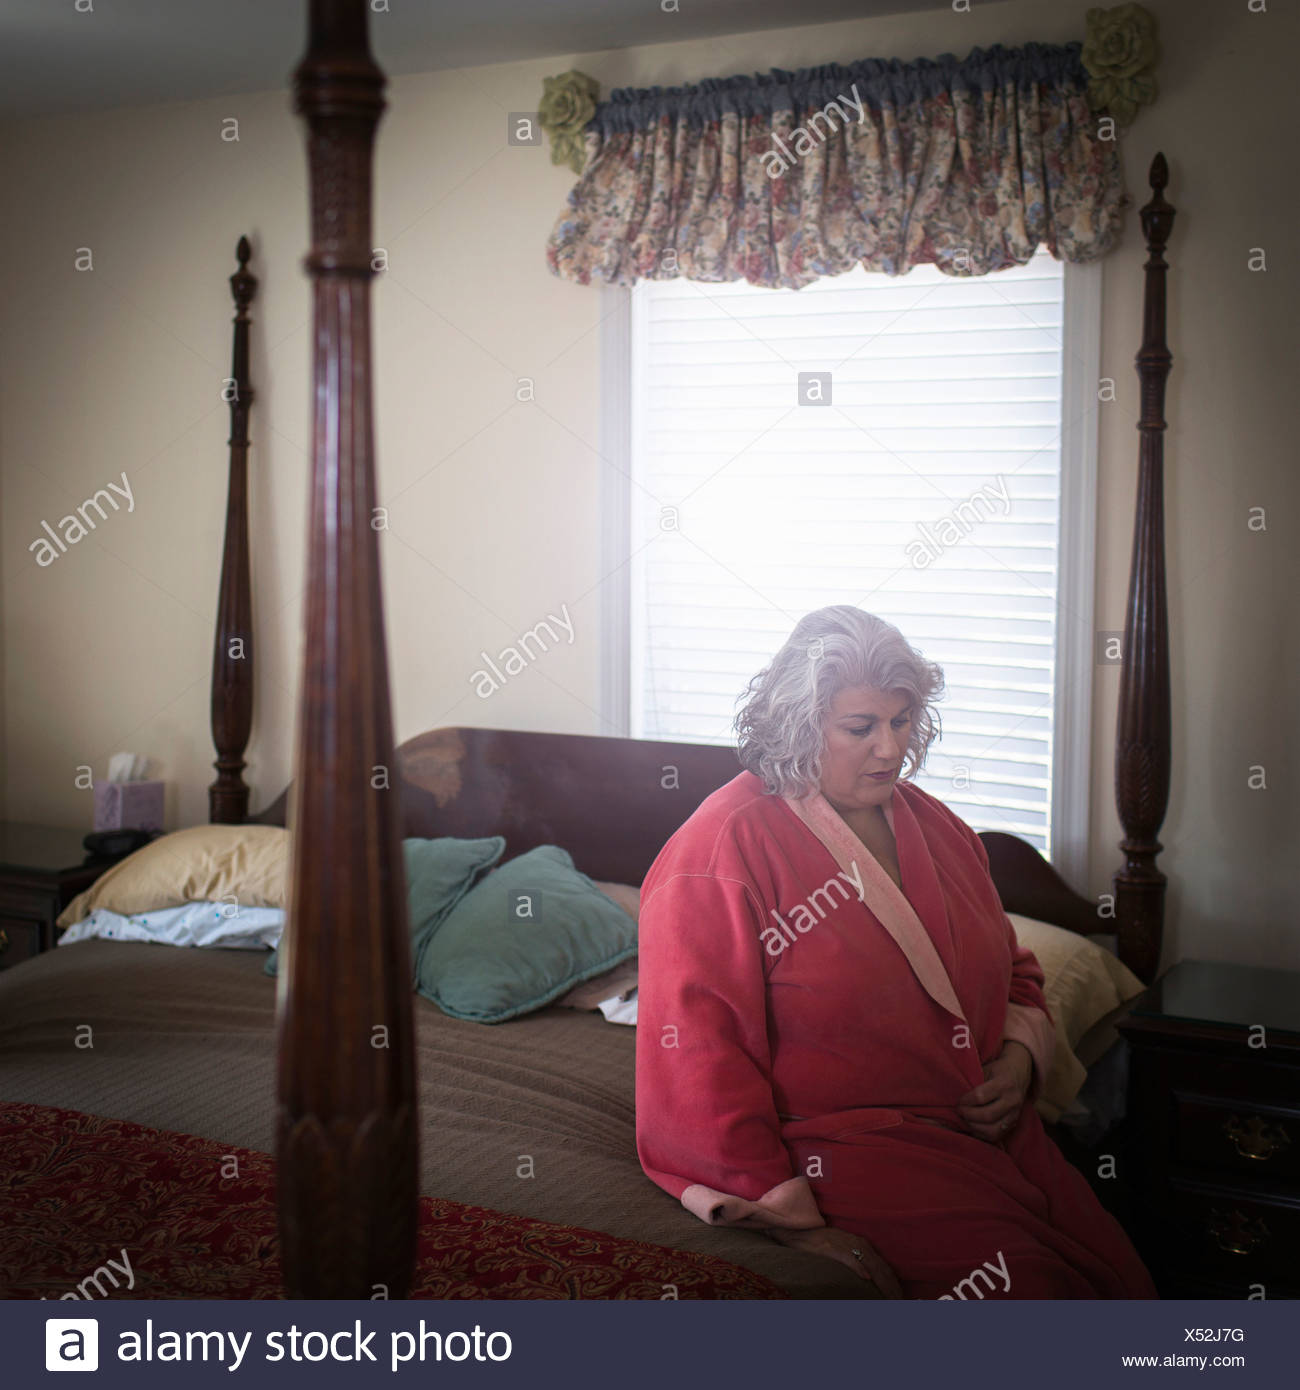 Unhappy mature woman sitting on bed - Stock Image